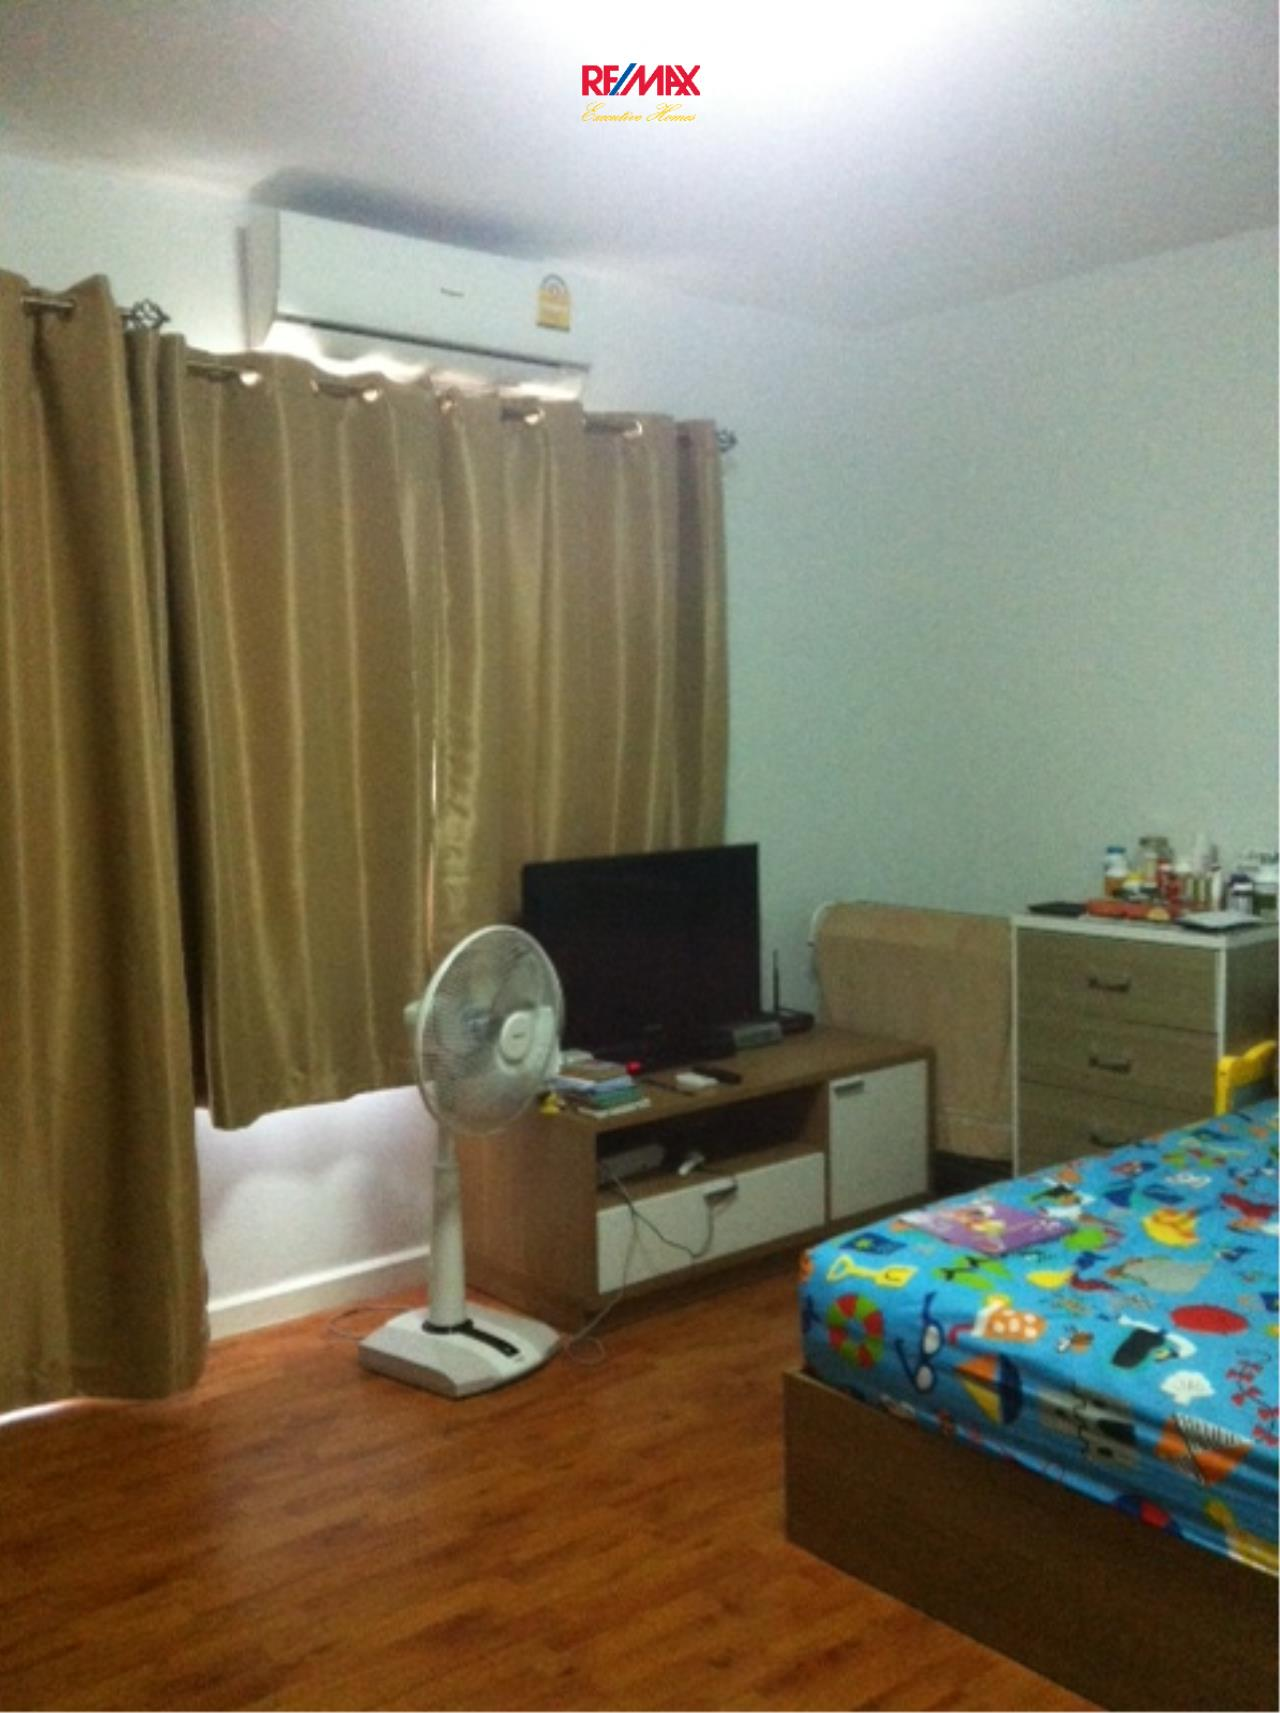 RE/MAX Executive Homes Agency's Nice 3 Bedroom House for Sale Moo Baan Time Home 3